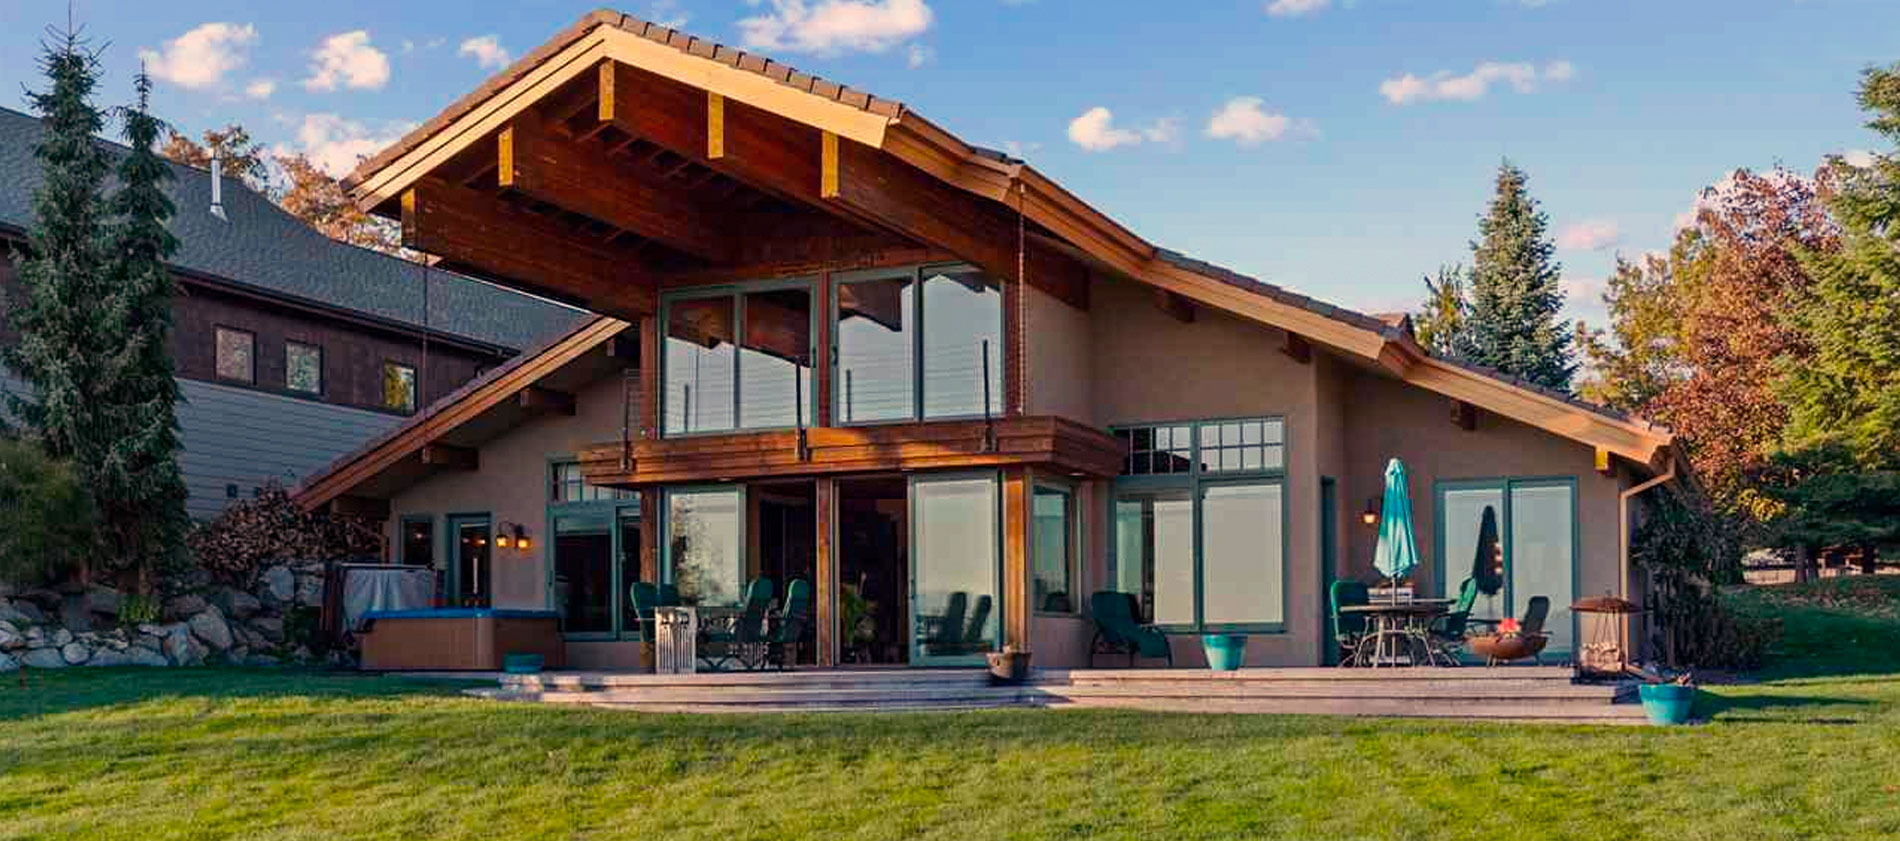 CUSTOM CRAFTSMEN WATERFRONT HOME IN GORGEOUS SANDPOINT, IDAHO